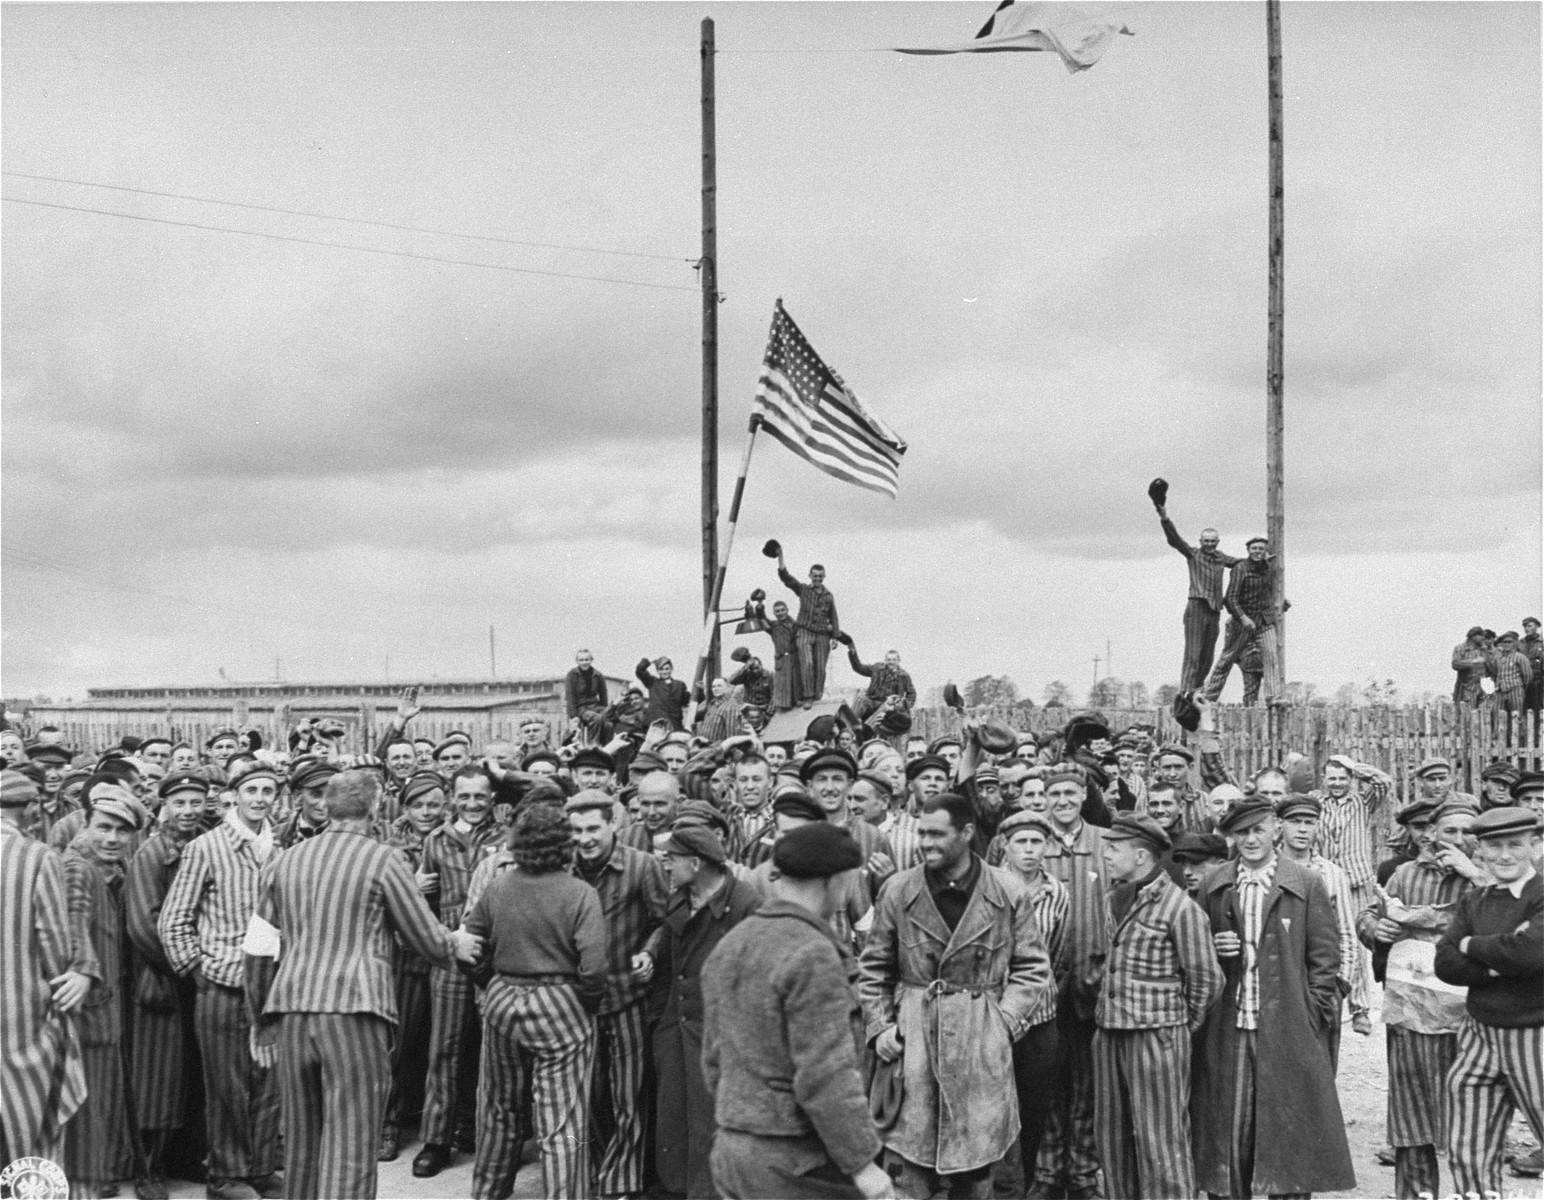 "Inmates waving a home-made American flag greet U.S. Seventh Army troops upon their arrival at the Allach concentration camp.    Three survivors pictured in the photo are: Martin Kaufman (b. in Krashnik, Poland); Leizer Fajerman (b. Sulejow, Poland, standing on right in a full length coat holding a cigarette); and Irving Miesing (Yitzhak Misengiser). The man in the long coat has alternatively been identified as Eli Okon from Bialystock.  Original caption reads, ""After American troops arrived, homemade American flag was raised by the prisoners of Dachau prison camp. As it waved in the breeze, it  seemed to reflect the joy of inmates who realize  freedom for the first time in many years."""